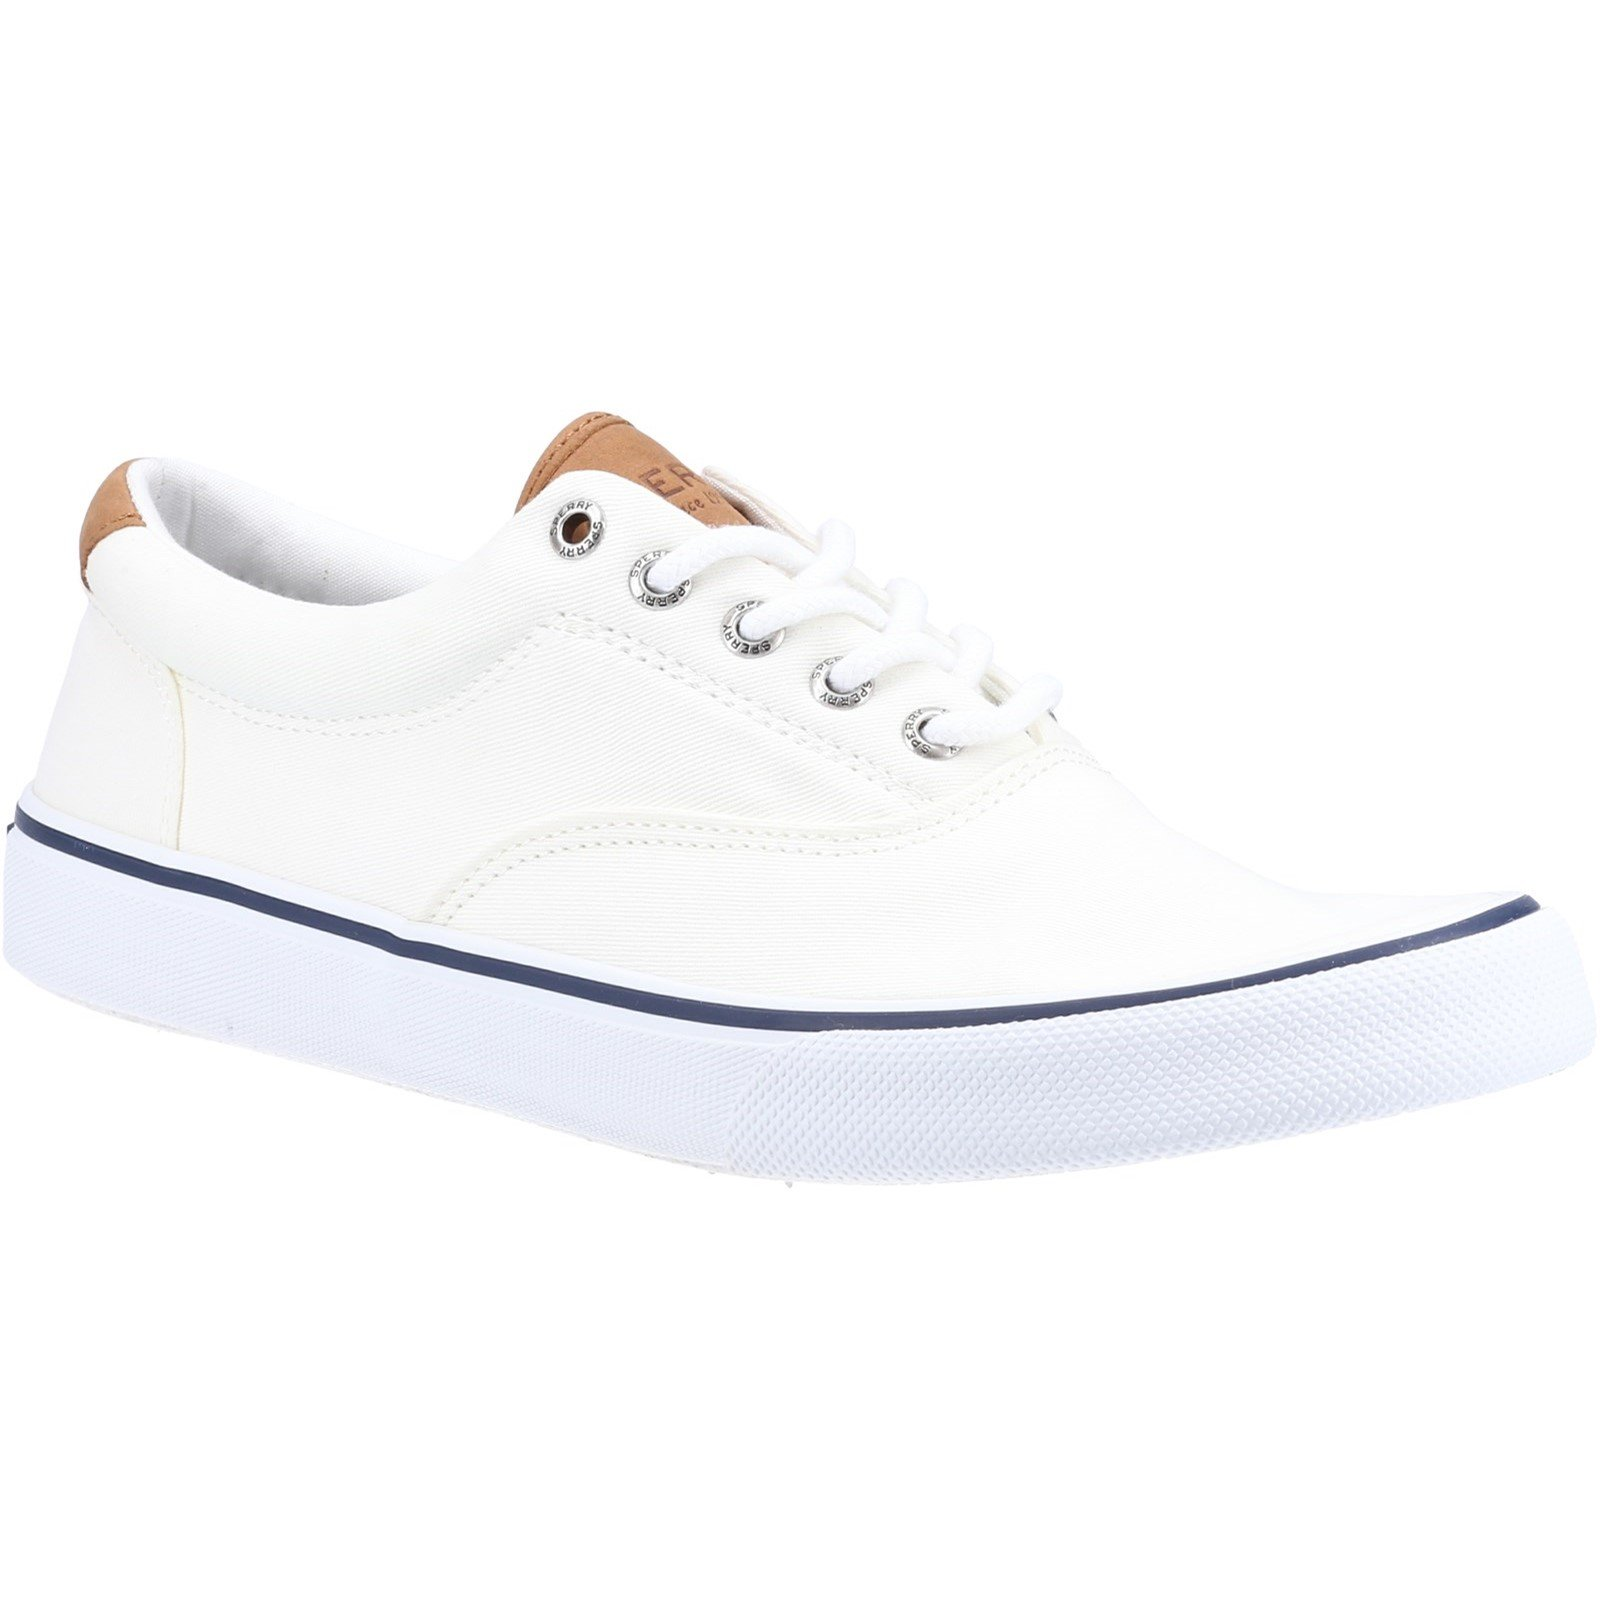 Sperry Men's Striper II CVO Canvas Trainers Various Colours 32397 - Salt Washed White 10